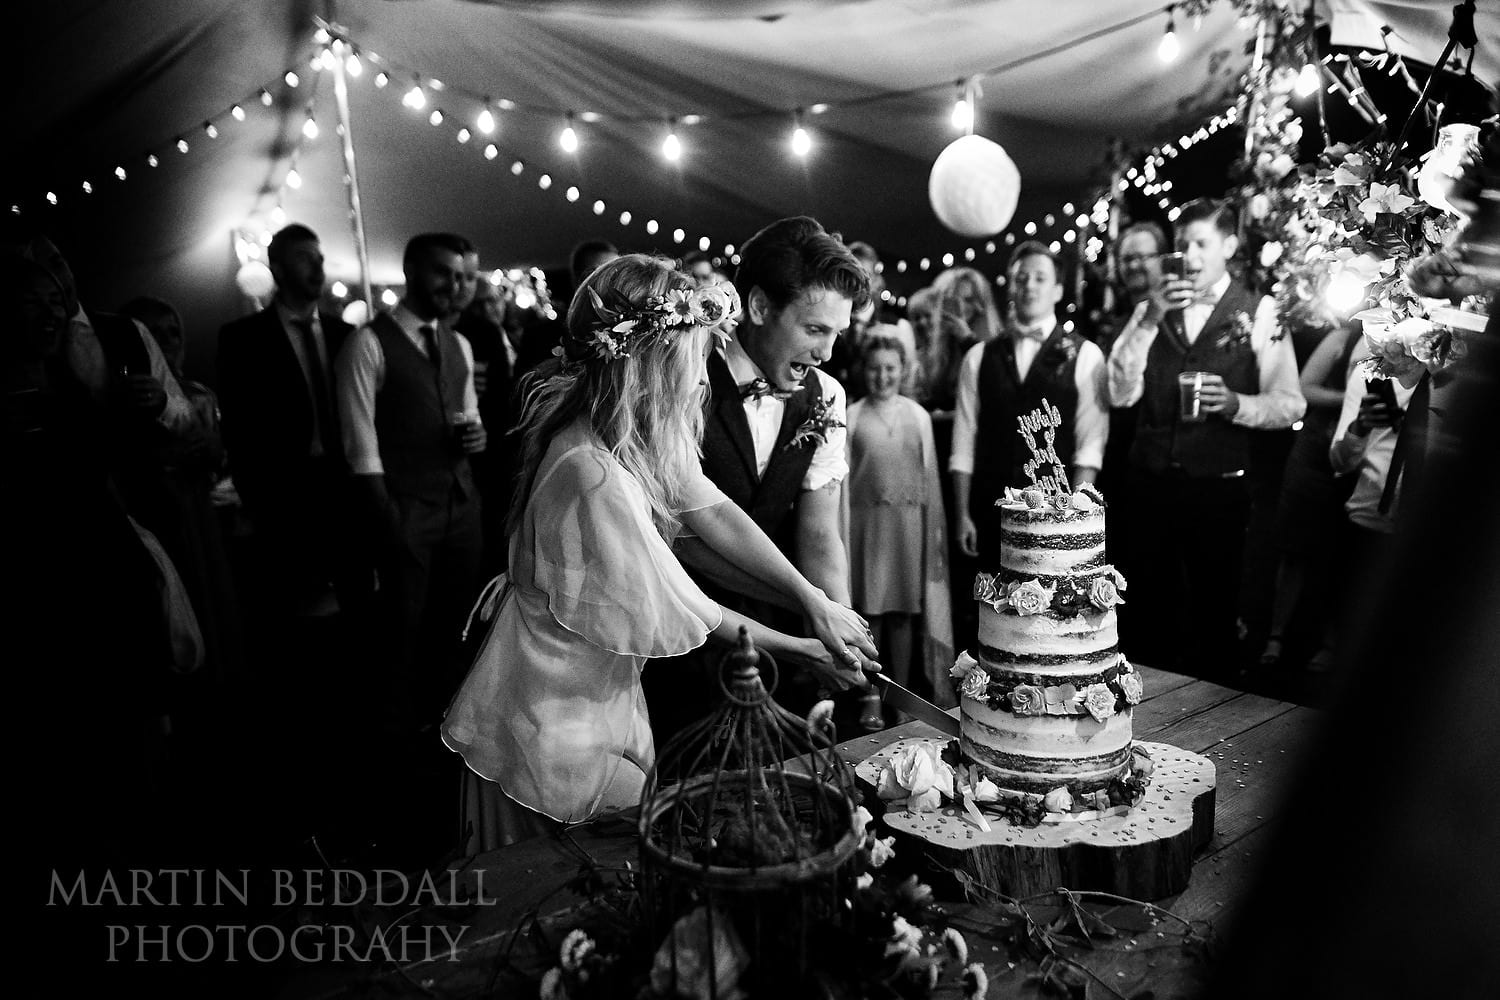 Cutting the wedding cake at East Sussex wedding